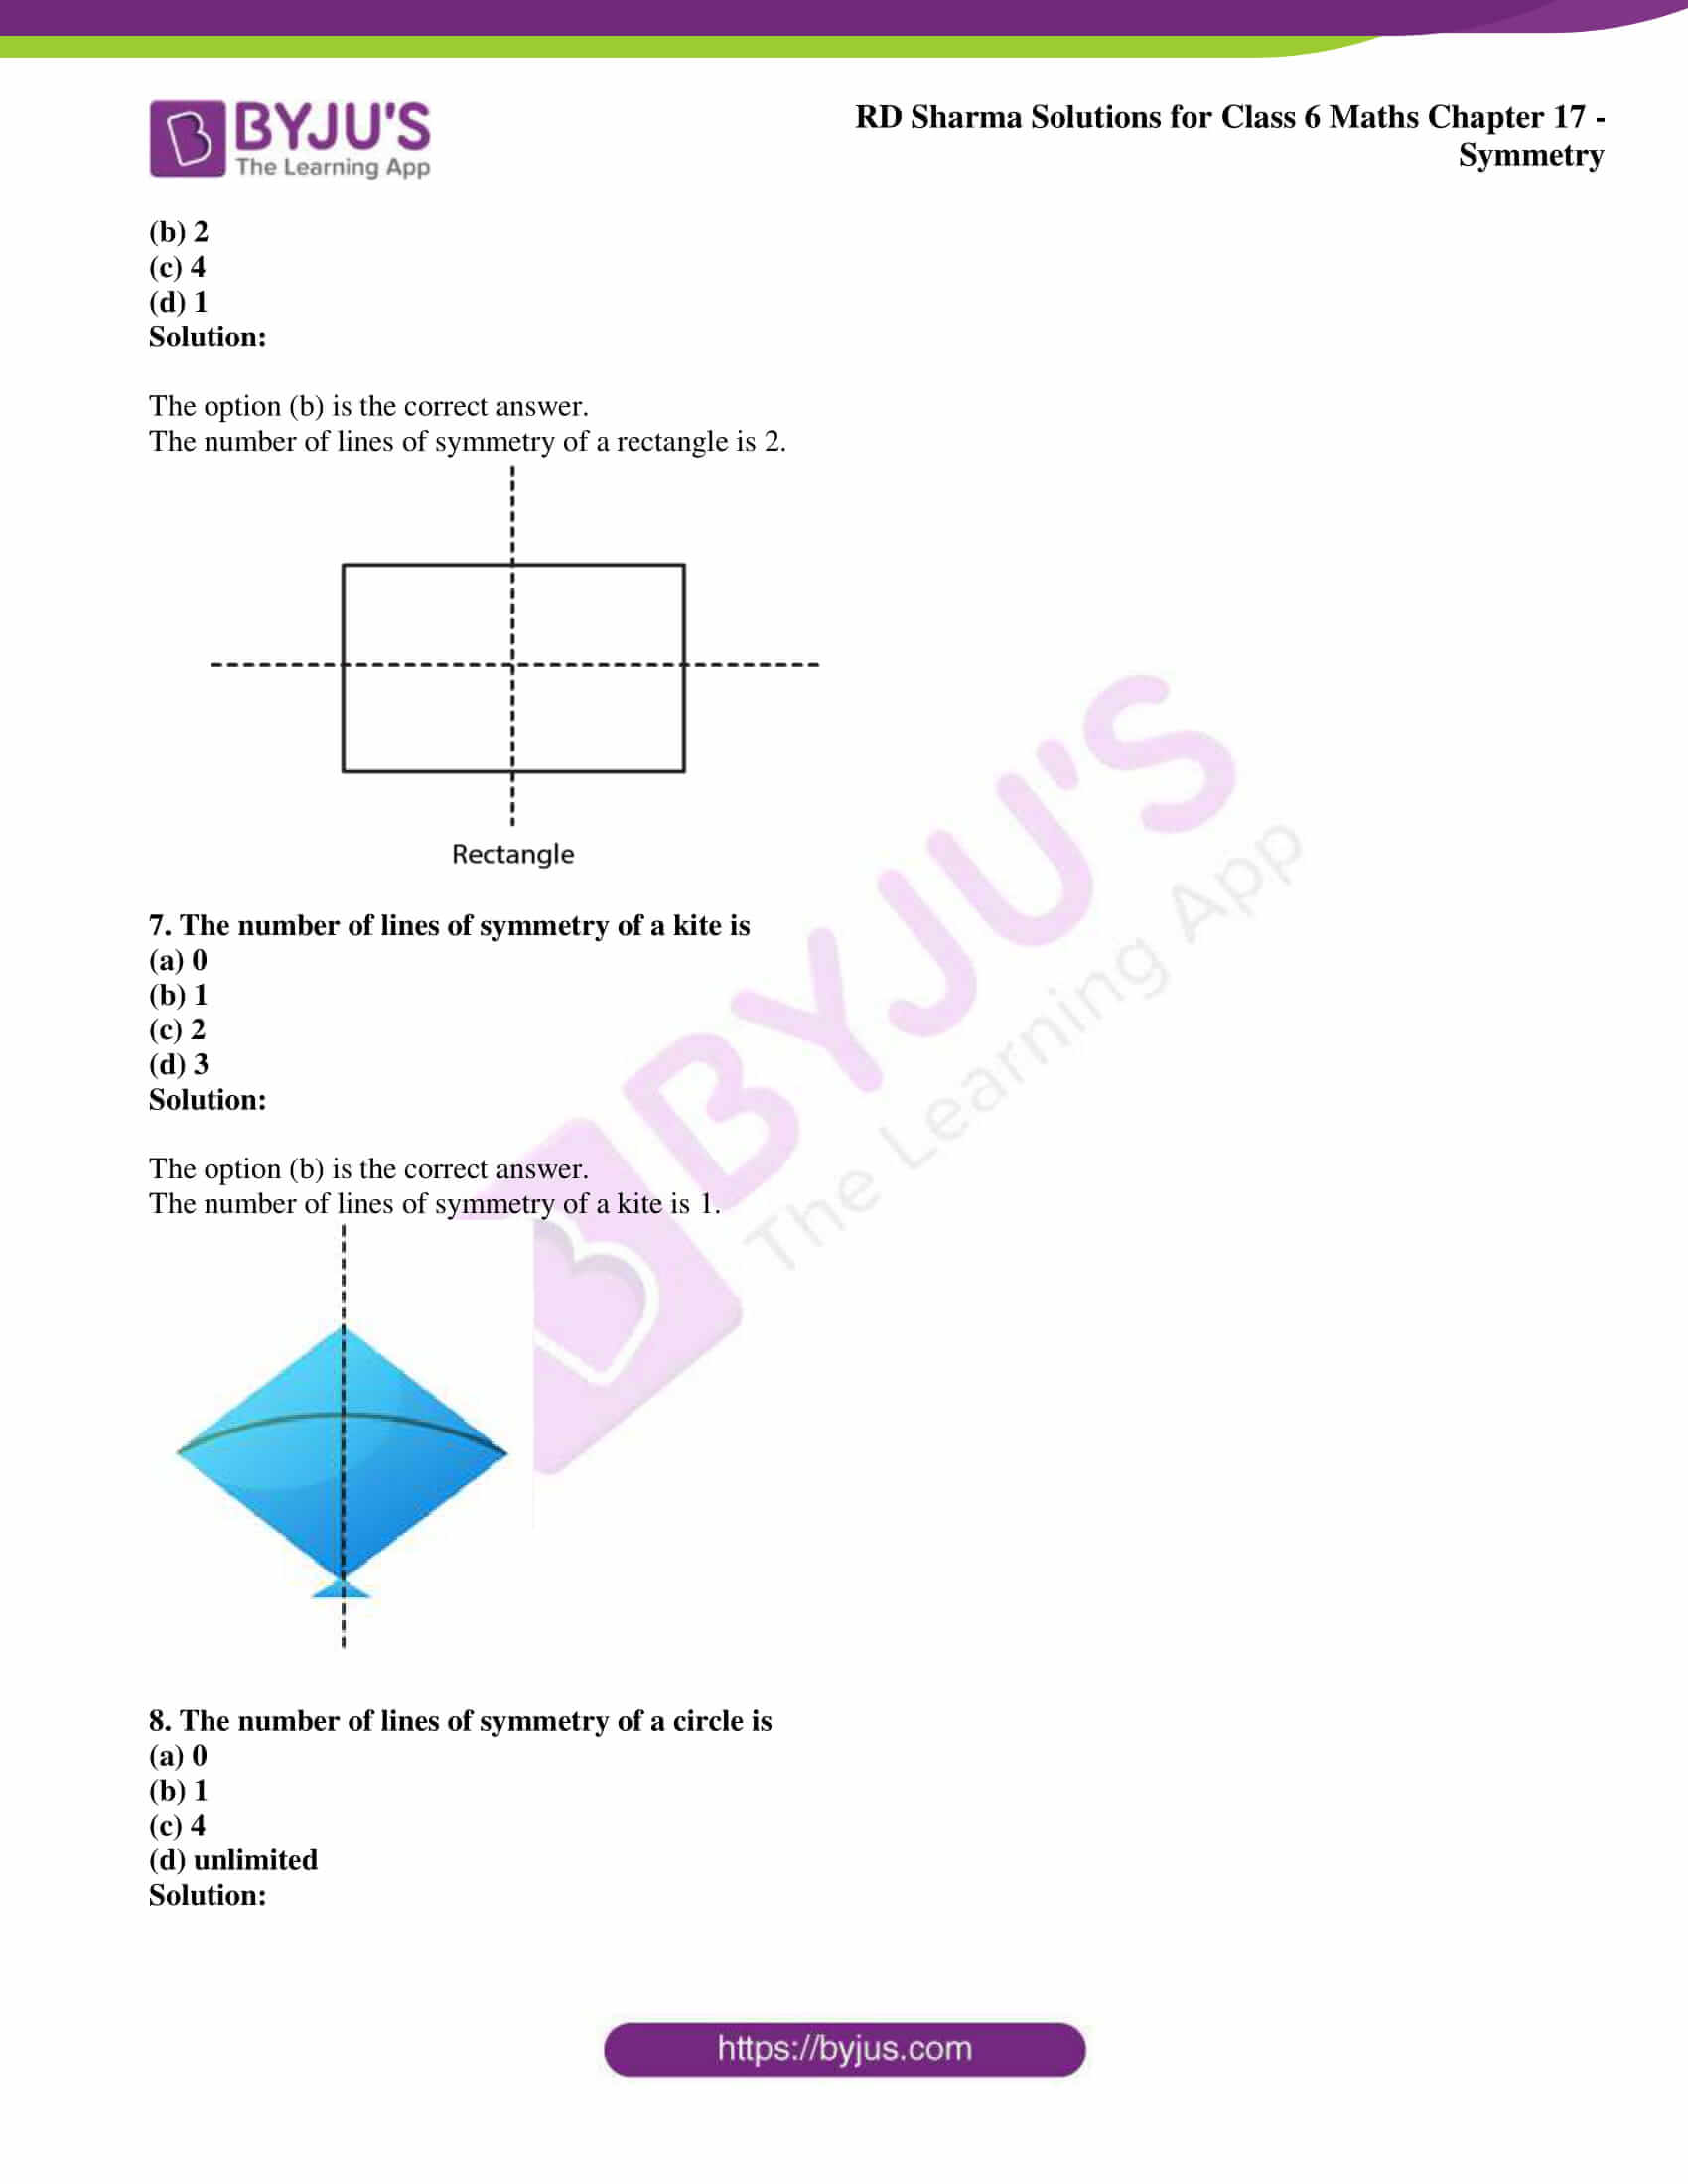 rd sharma solutions nov2020 class 6 maths chapter 17 exercise obj 3